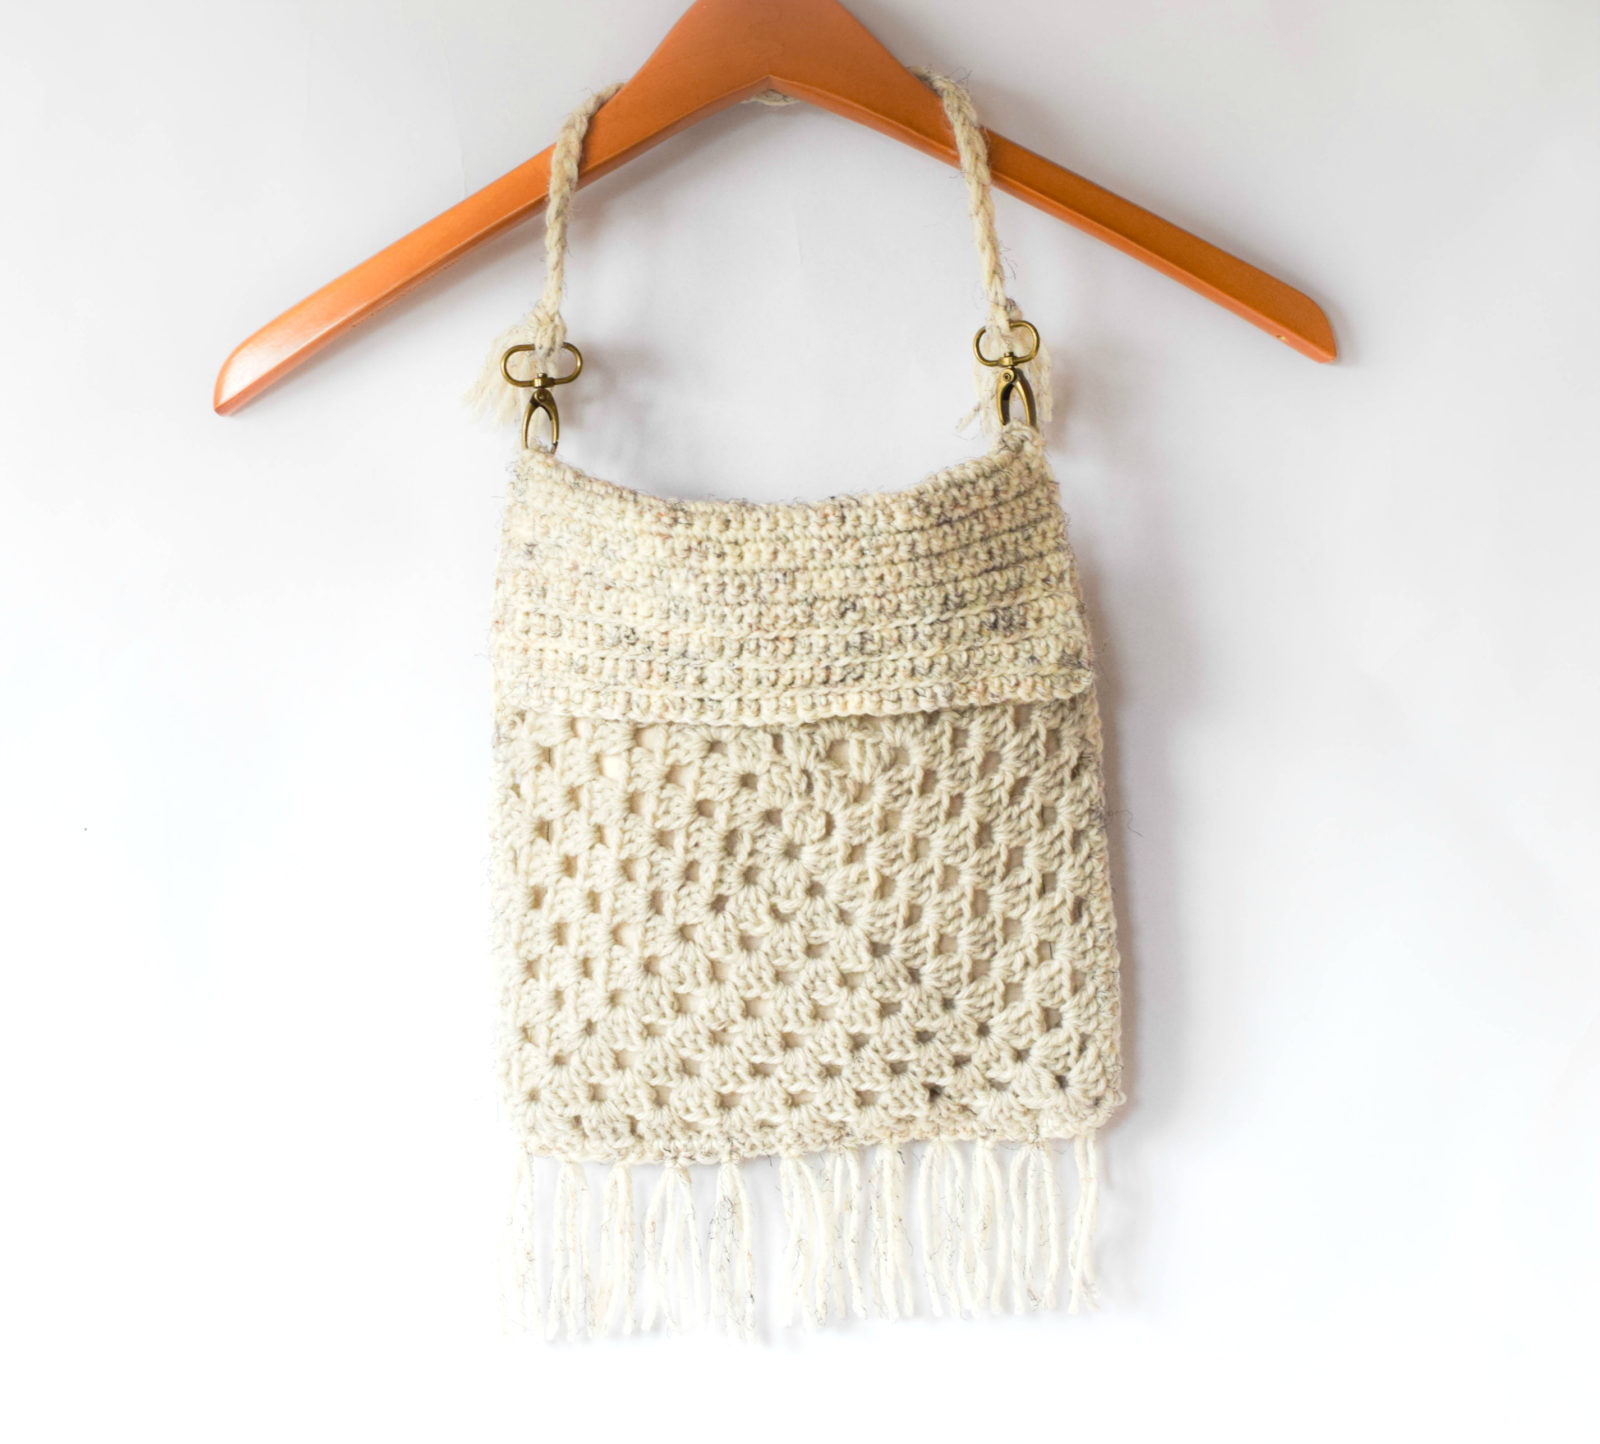 Crochet Boho Bag : You can now purchase this pattern in an ad-free PDF form from my Etsy ...